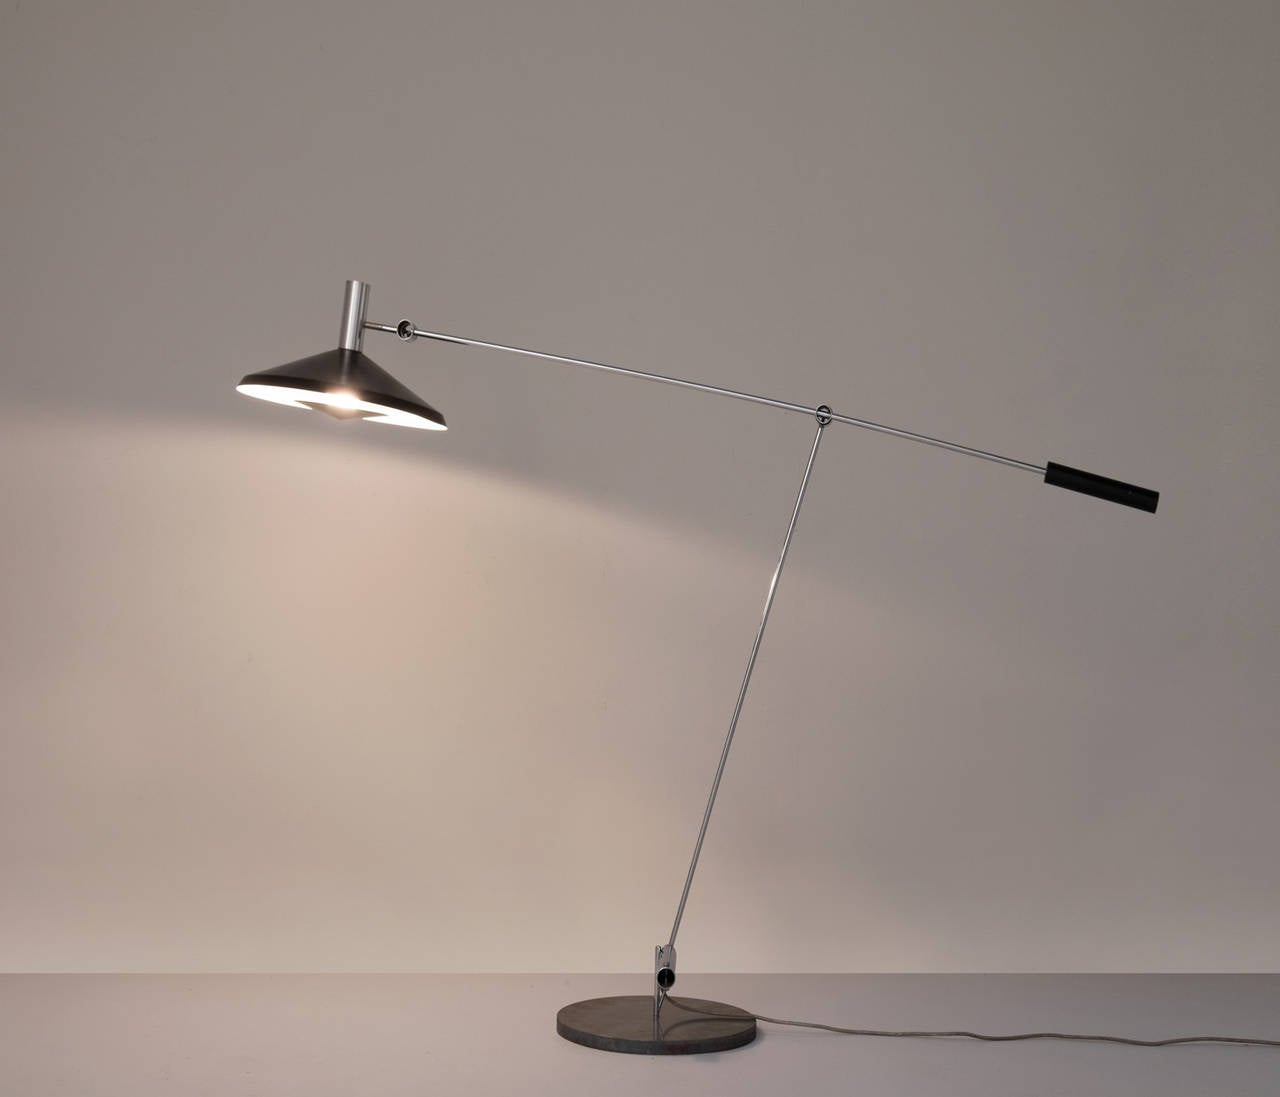 Floor lamp model 600, in metal, by Rico & Rosemarie Baltensweiler, Switzerland 1960s. 